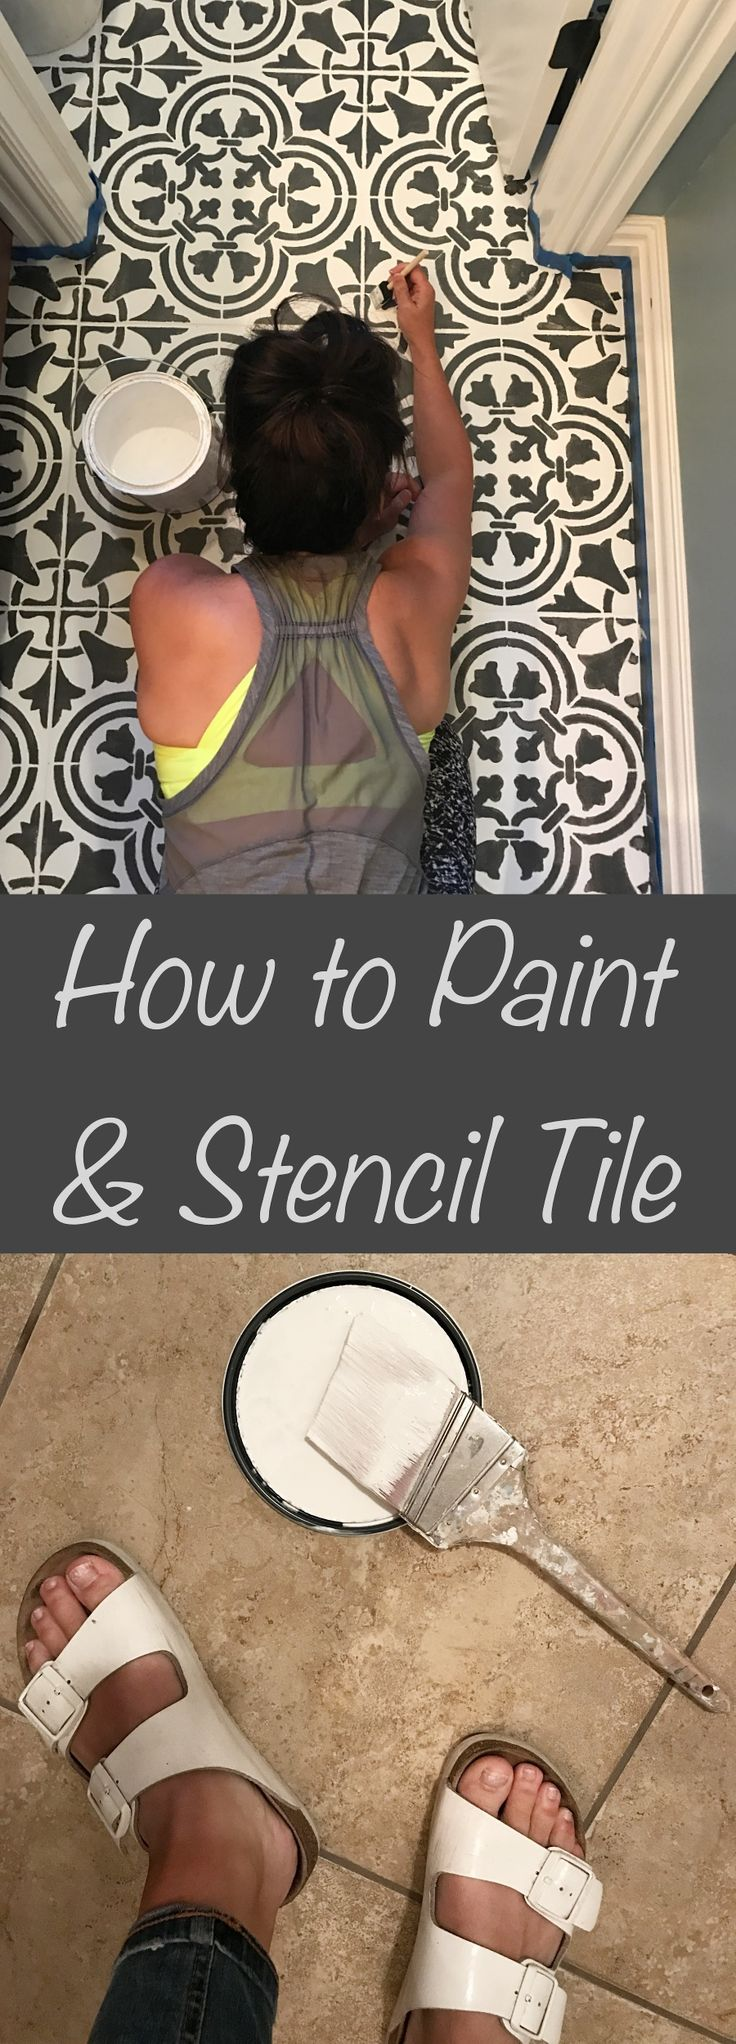 How to paint and stencil tile...Cement tile look-a-like